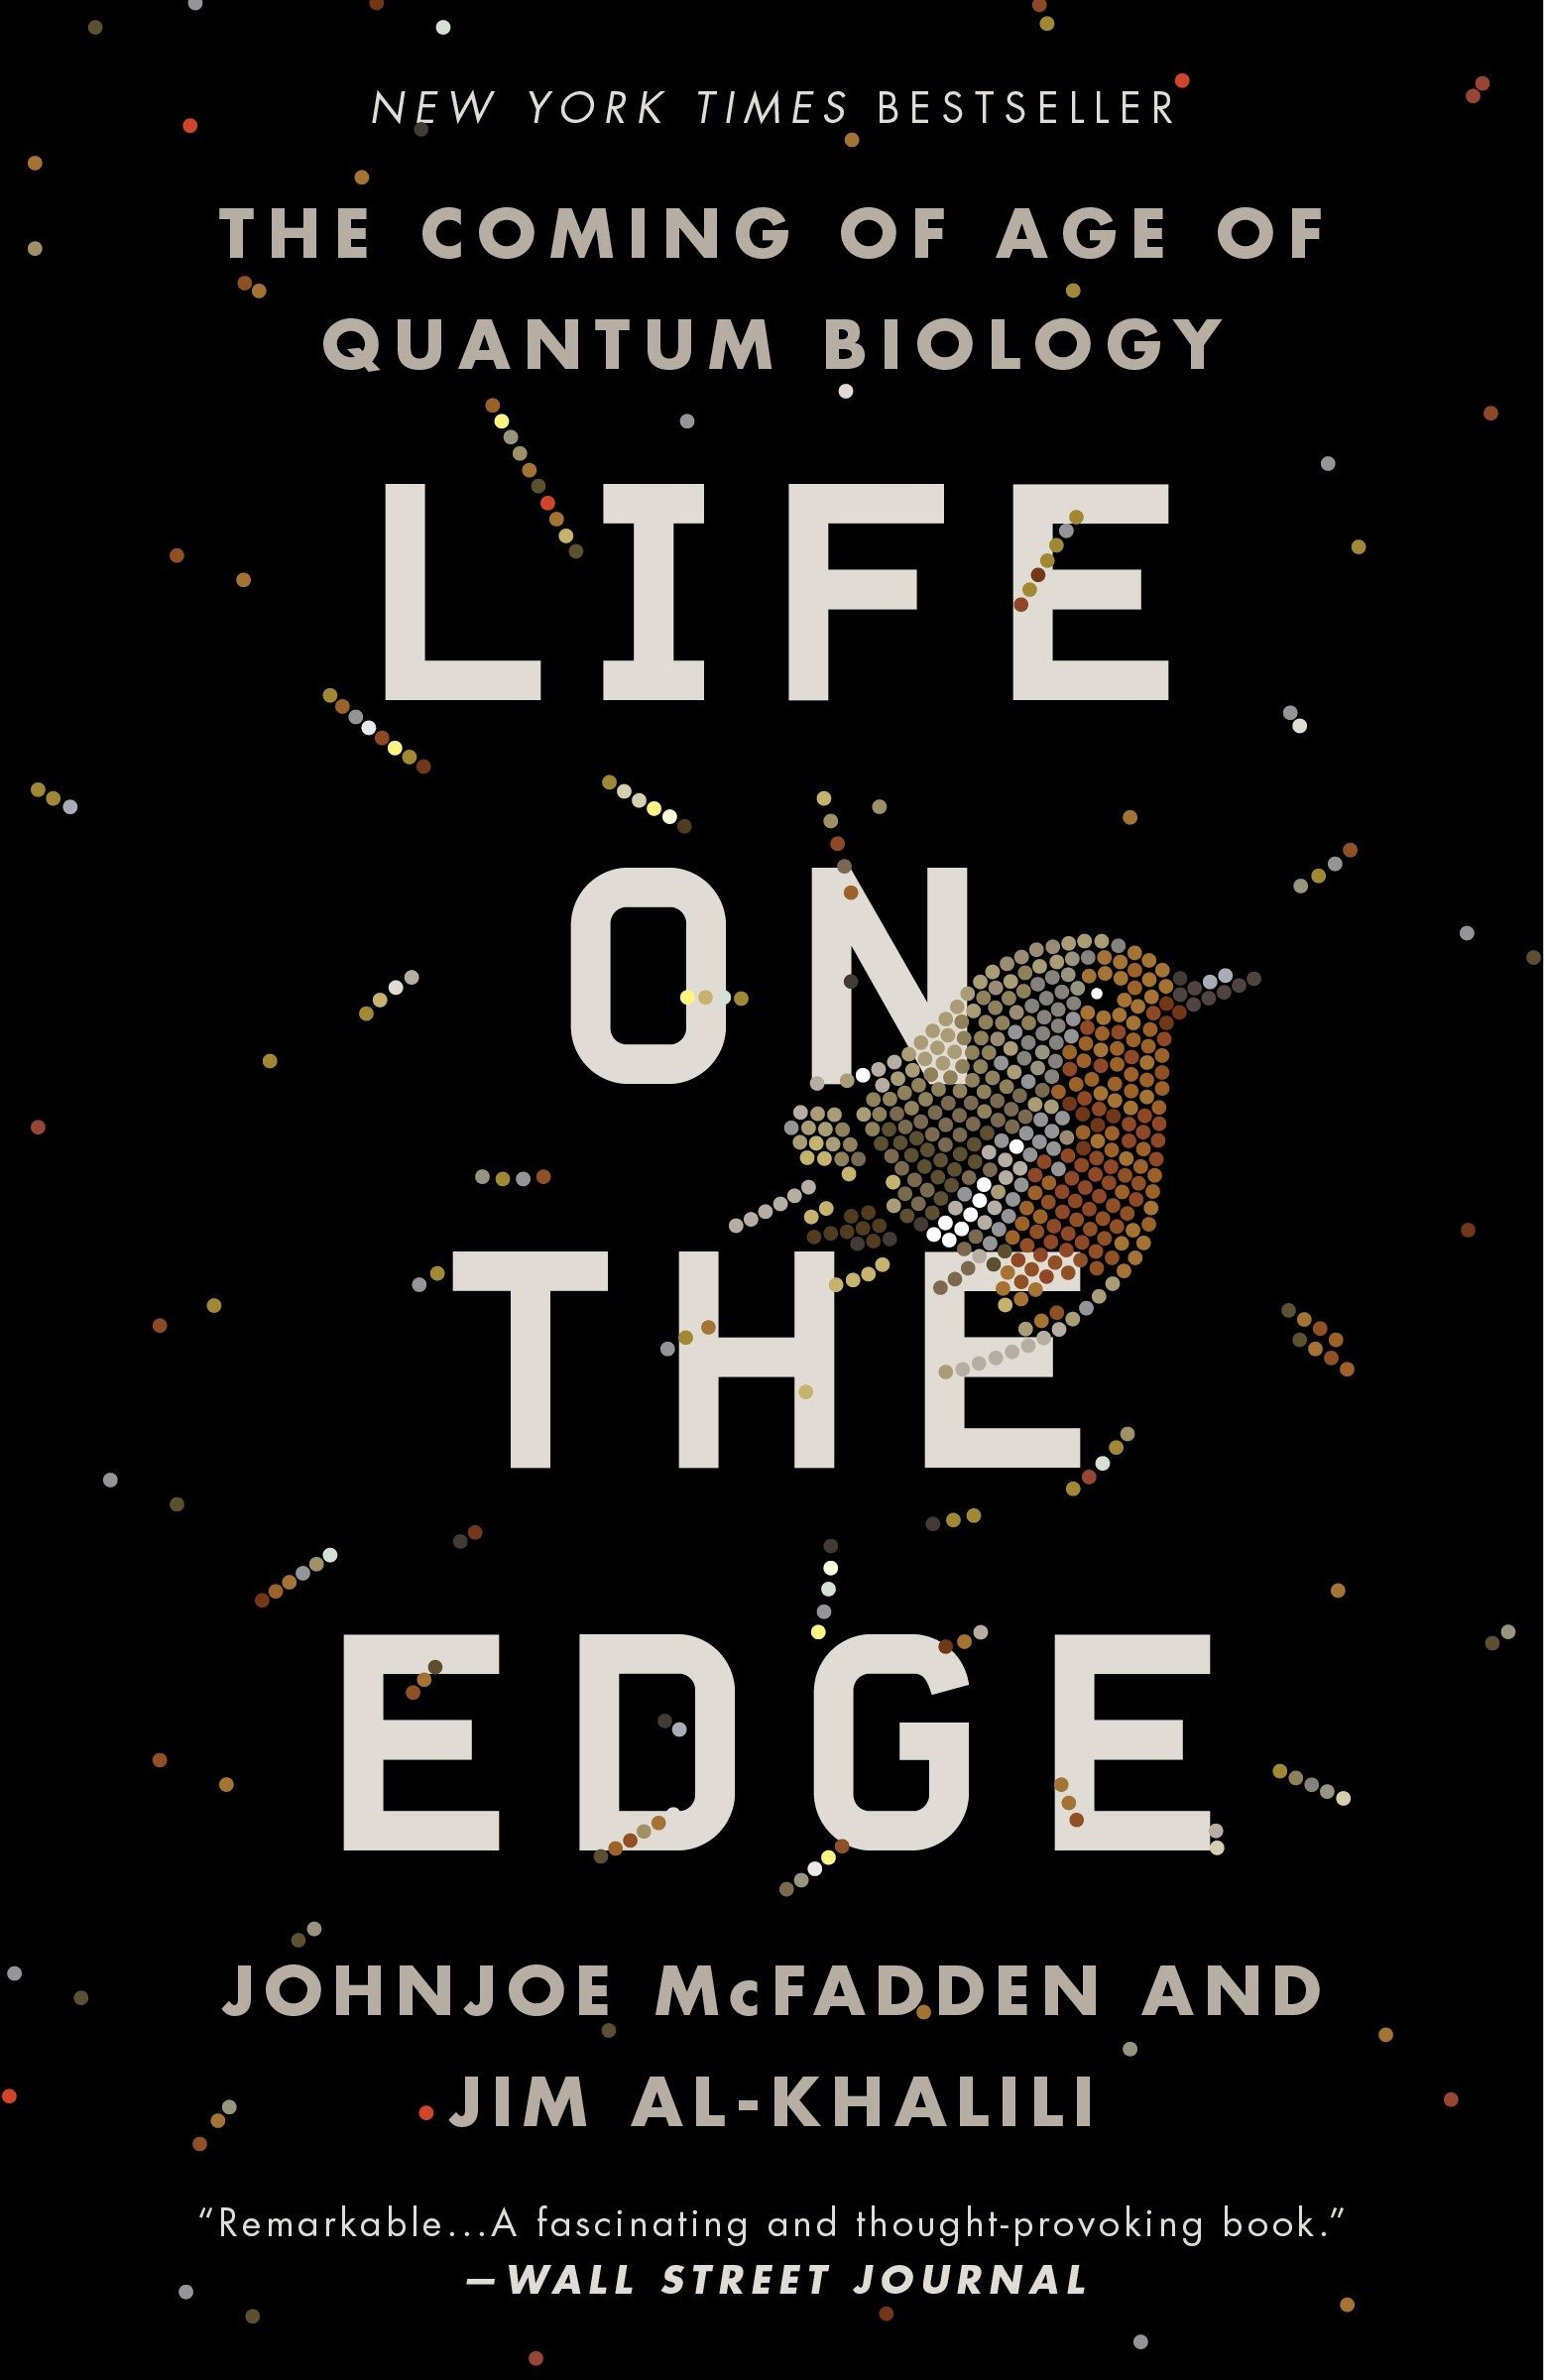 Life on the edge the coming of age of quantum biology livros na life on the edge the coming of age of quantum biology livros na amazon brasil 9780307986825 fandeluxe Gallery